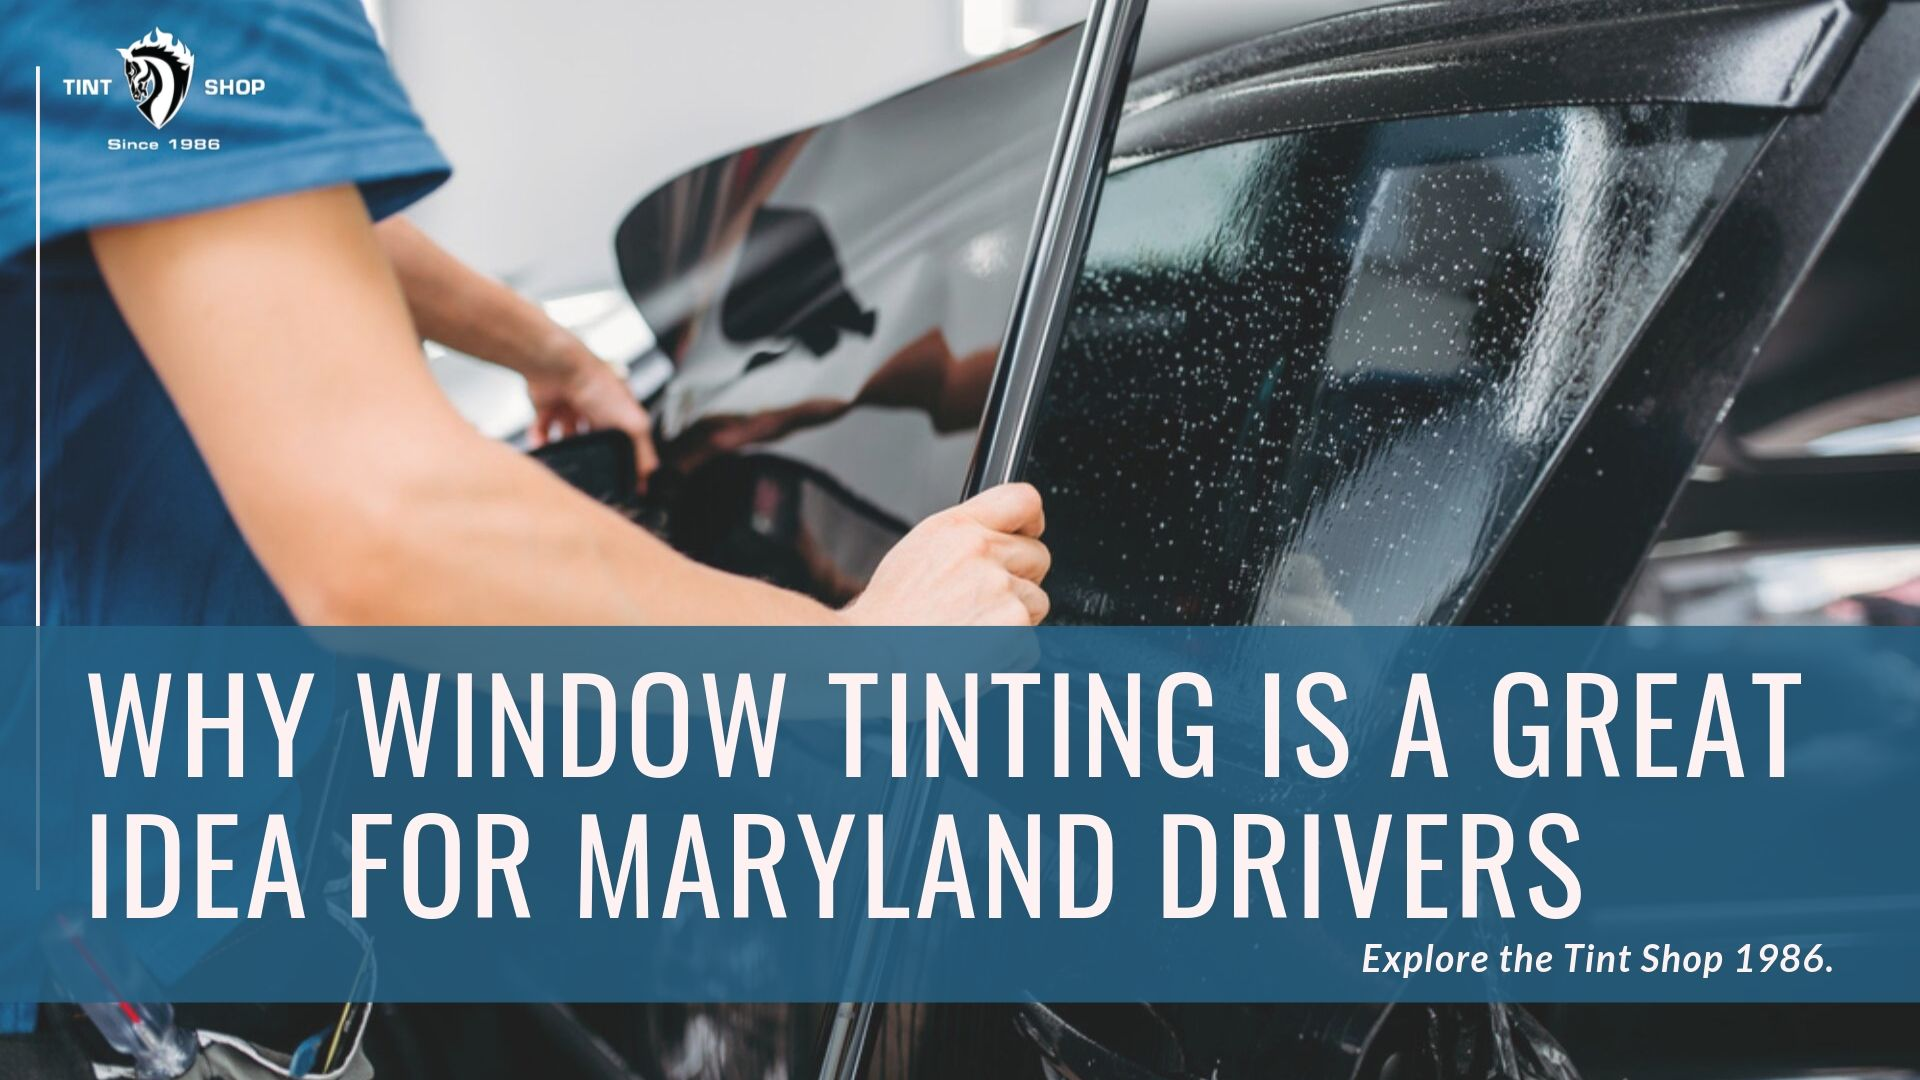 WHY WINDOW TINTING IS A GREAT IDEA FOR MARYLAND DRIVERS